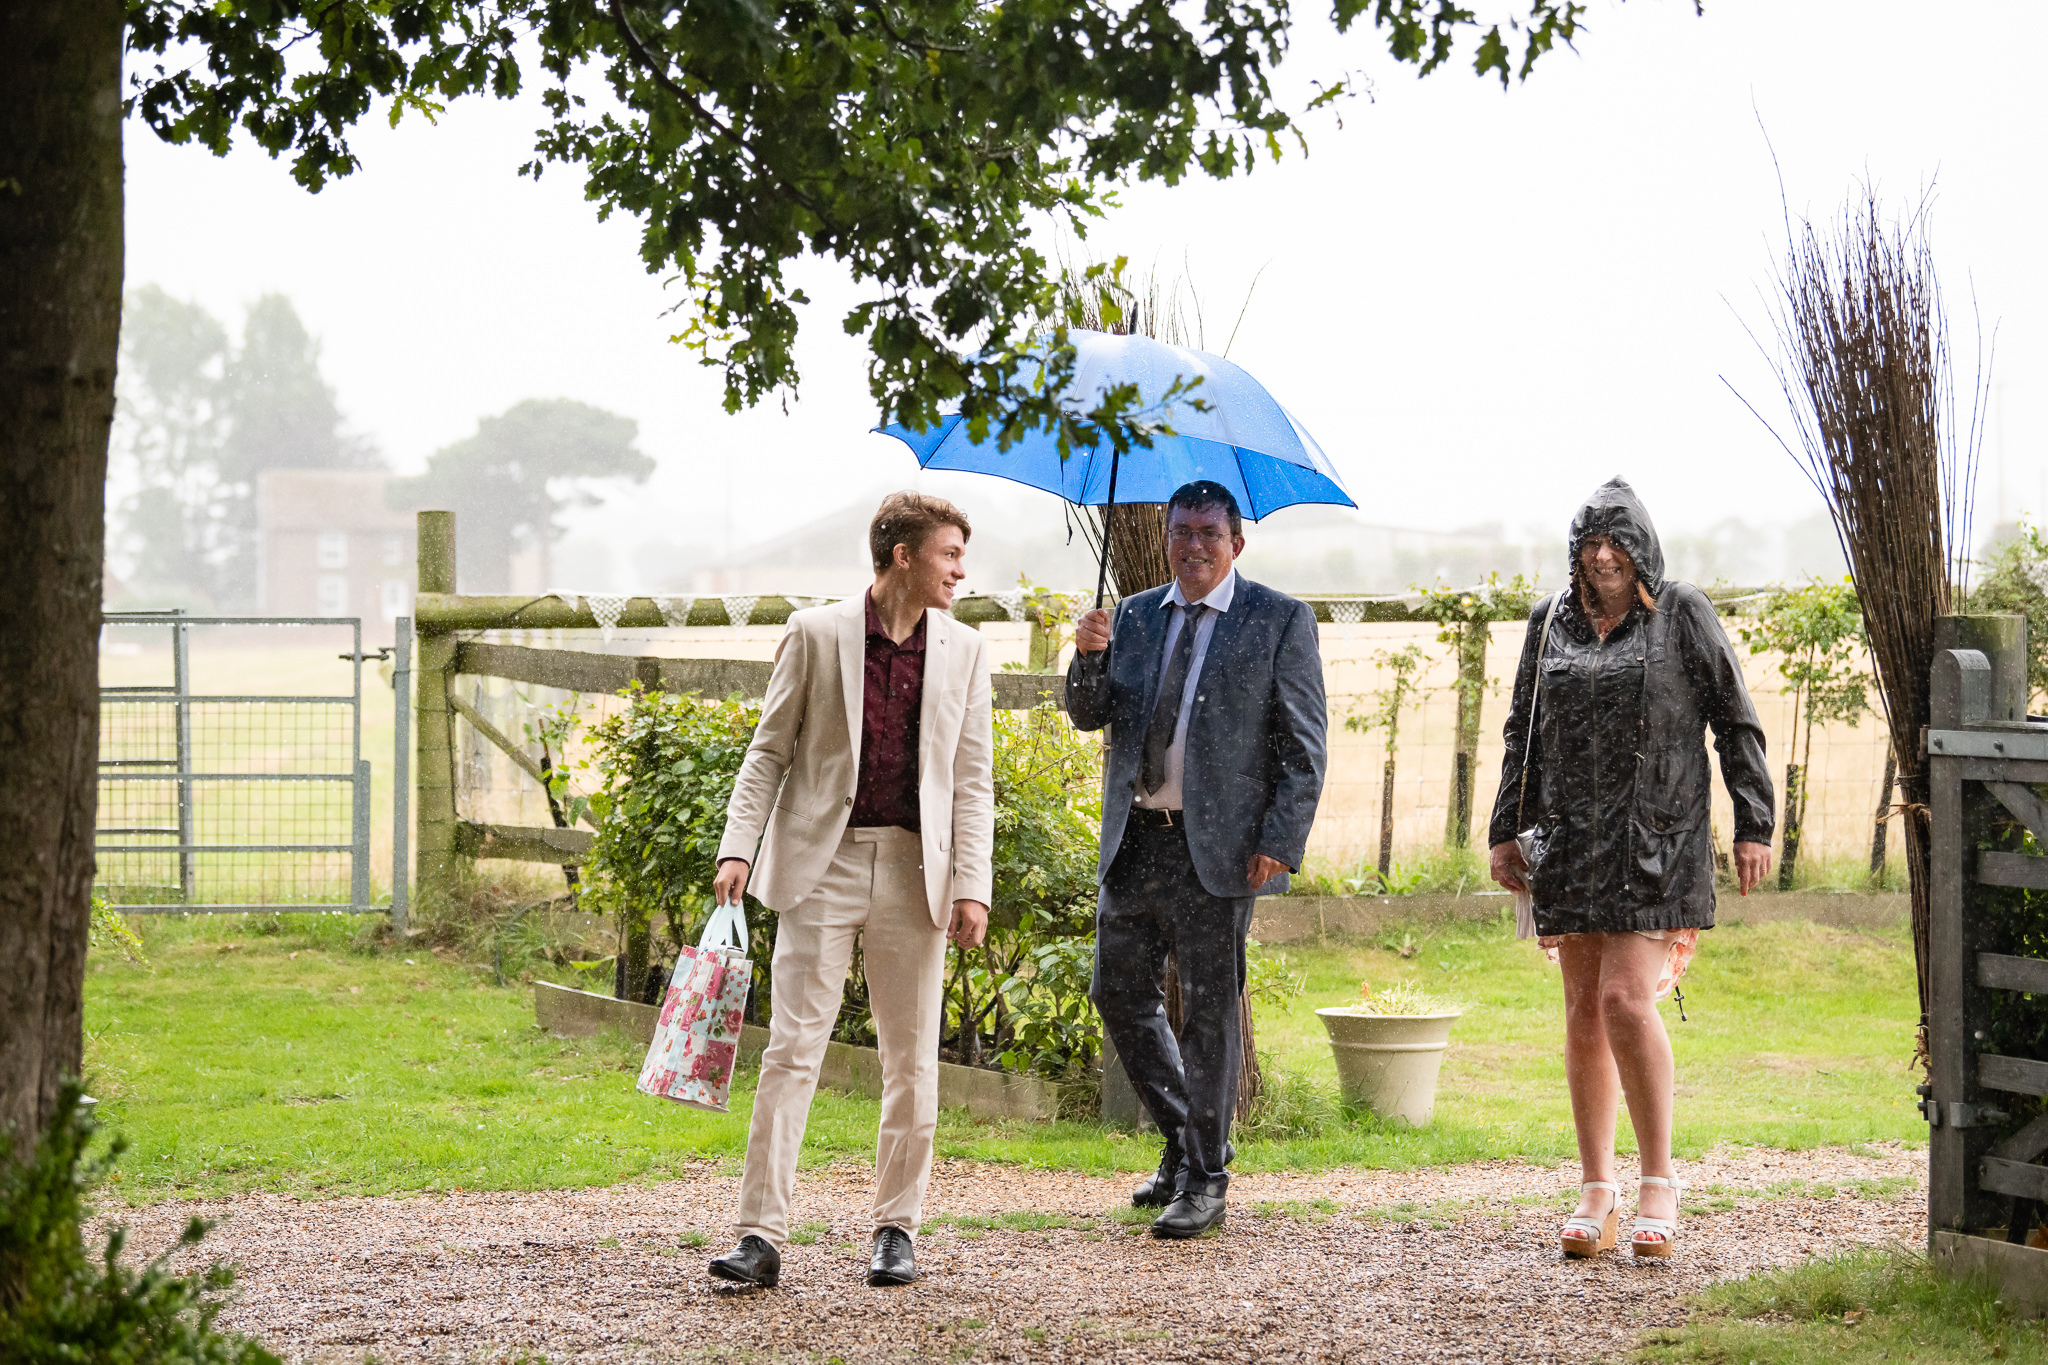 Guests arriving in the rain at the Oak Grove